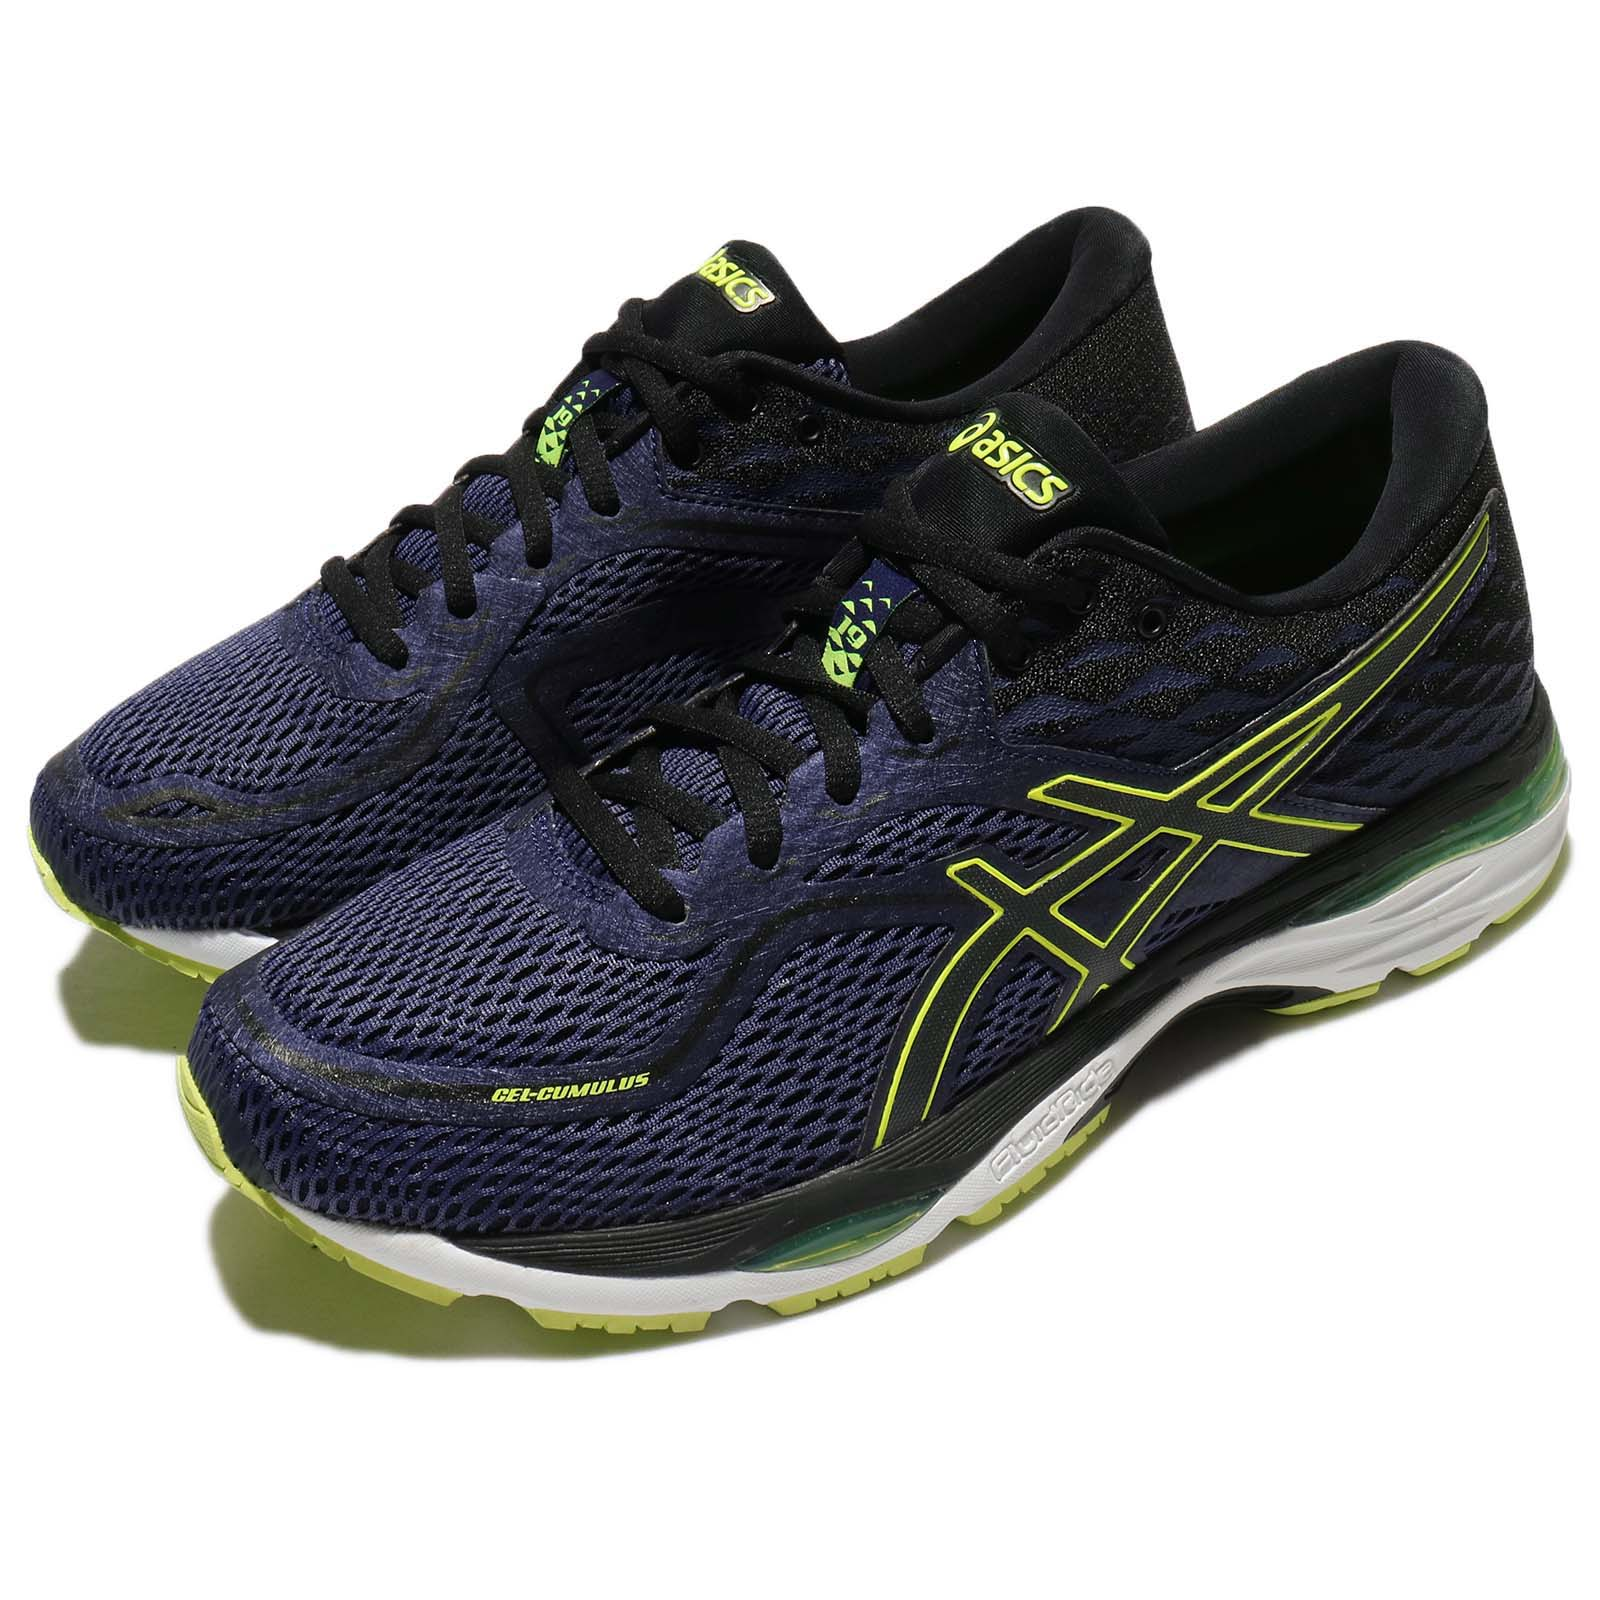 9bbab6f74 Details about Asics Gel-Cumulus 19 Blue Safety Yellow Men Running Shoes  Trainers T7B3N-4990